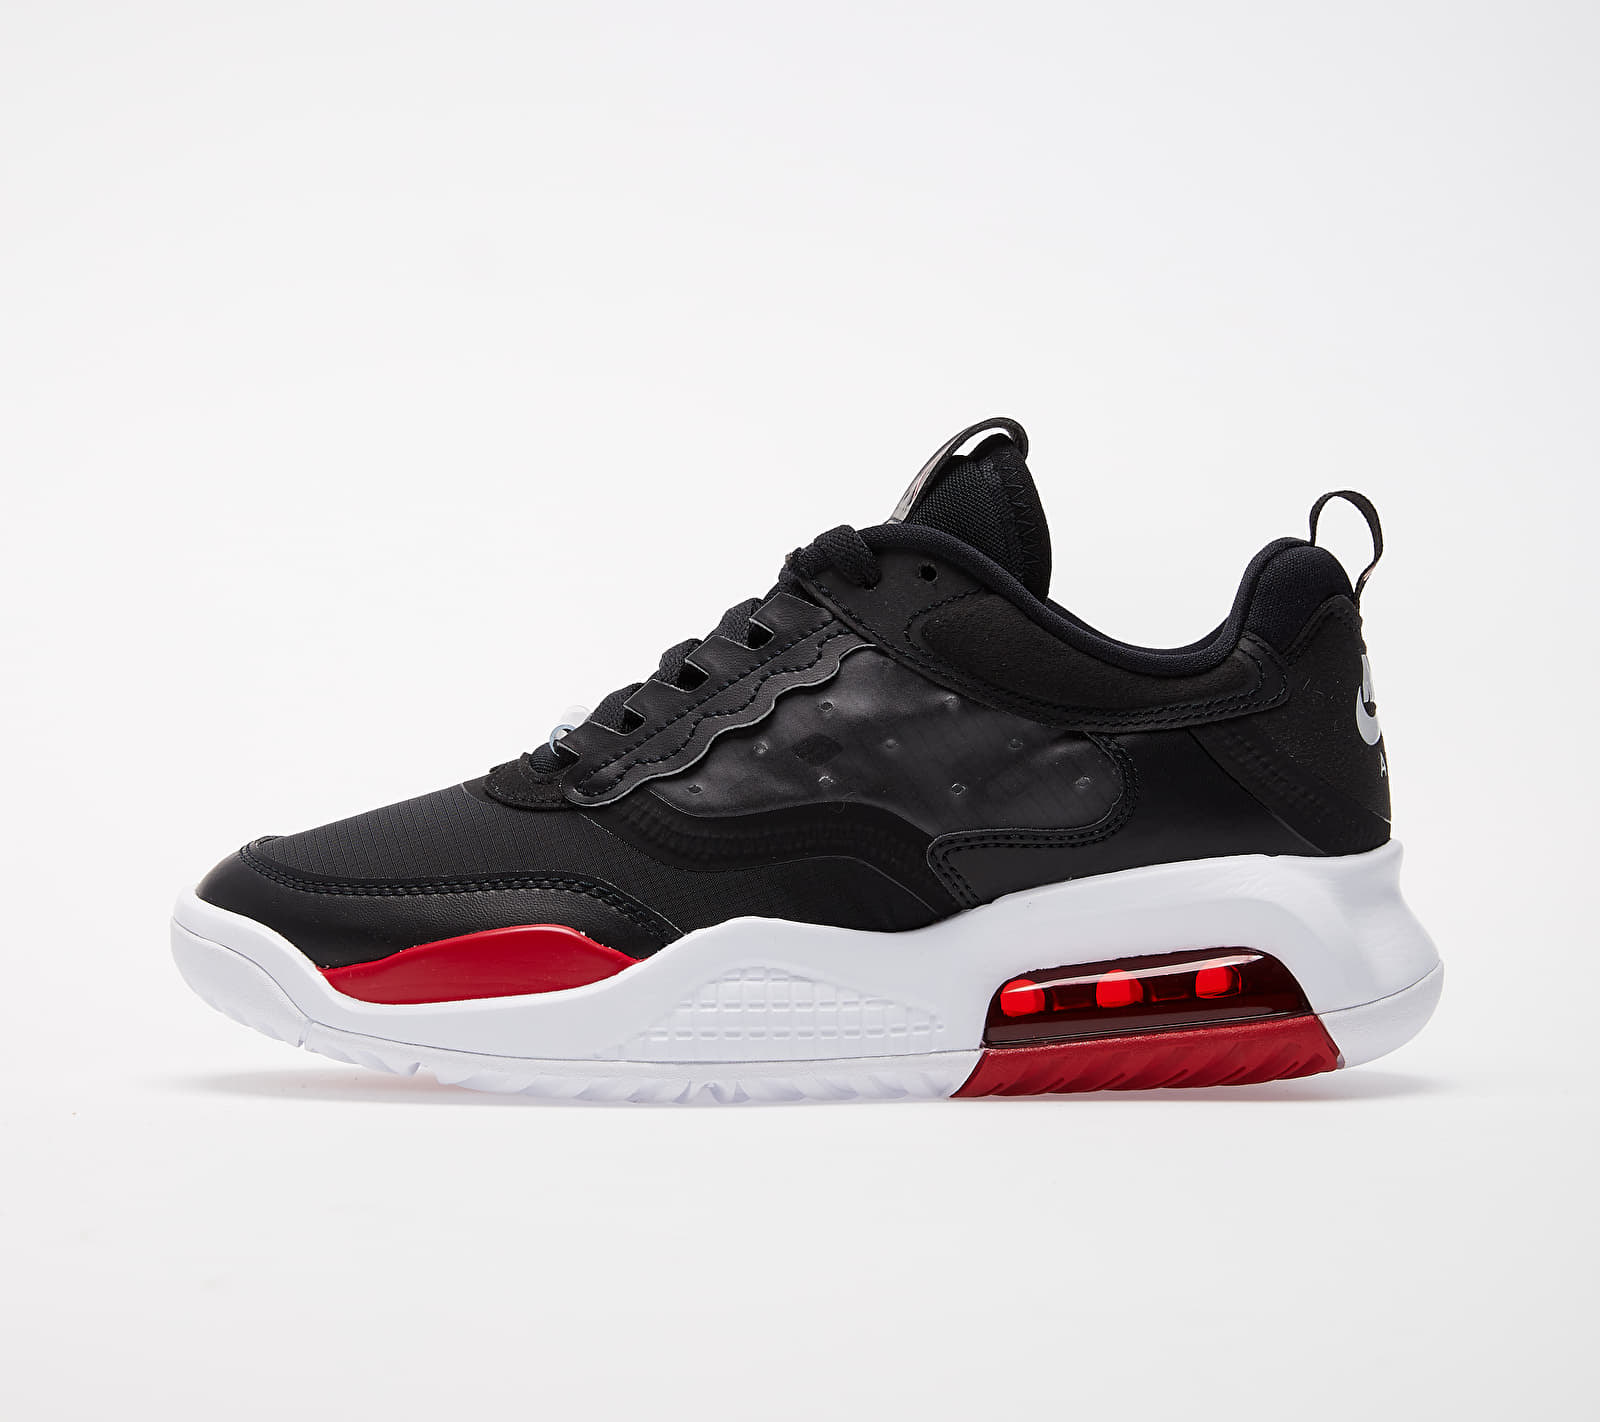 Jordan Max 200 (GS) Black/ Gym Red-White EUR 36.5